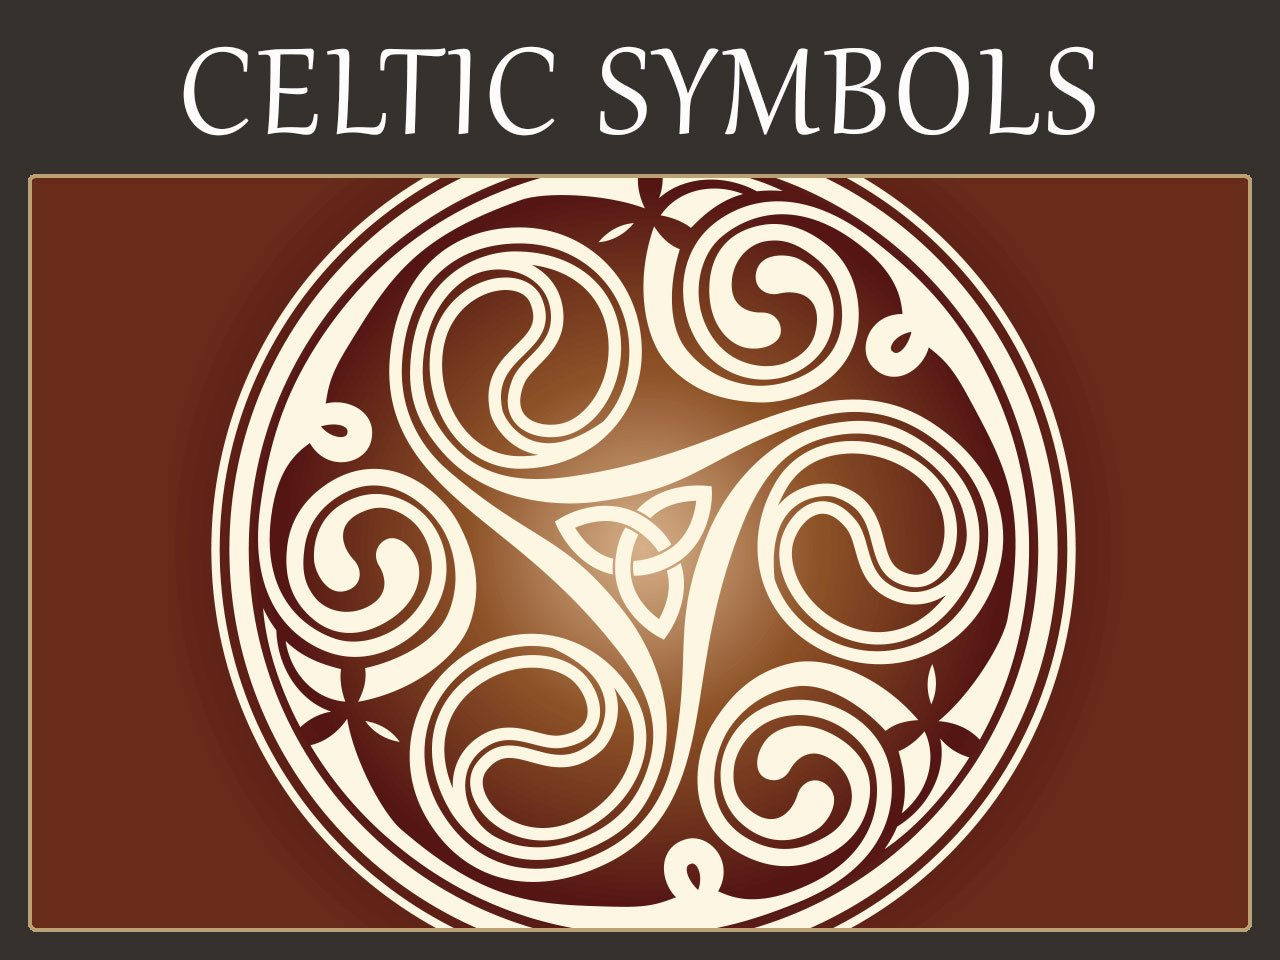 Celtic Symbols & Meanings | Celtic Cross, Triquetra ...